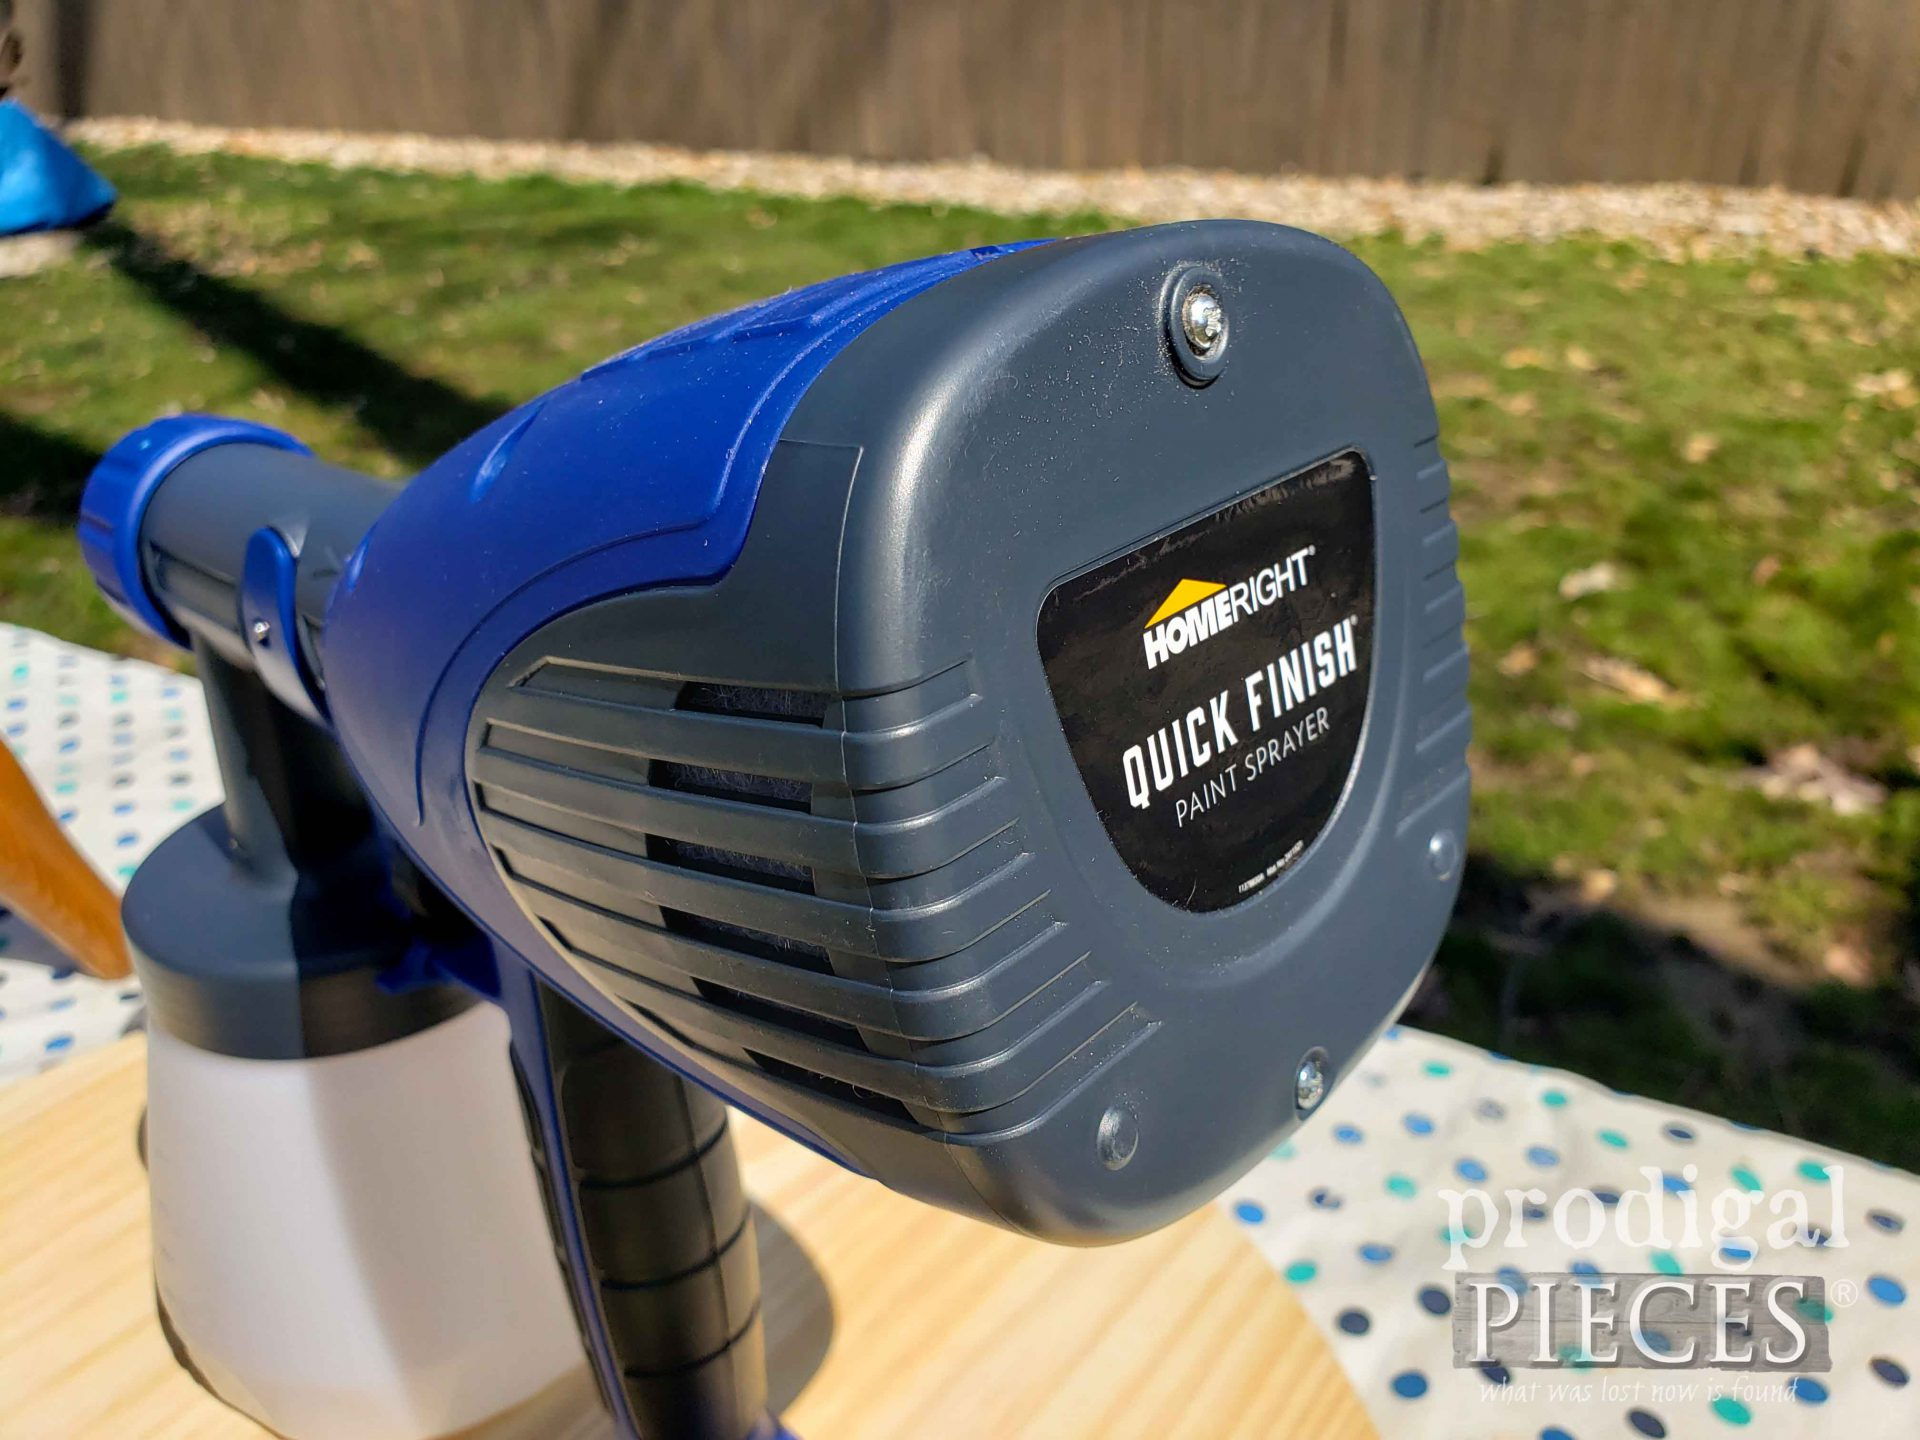 Brand New HomeRight Quick Finish Paint/Stain Sprayer featured by Larissa of Prodigal Pieces   prodigalpieces.com #prodigalpieces #tools